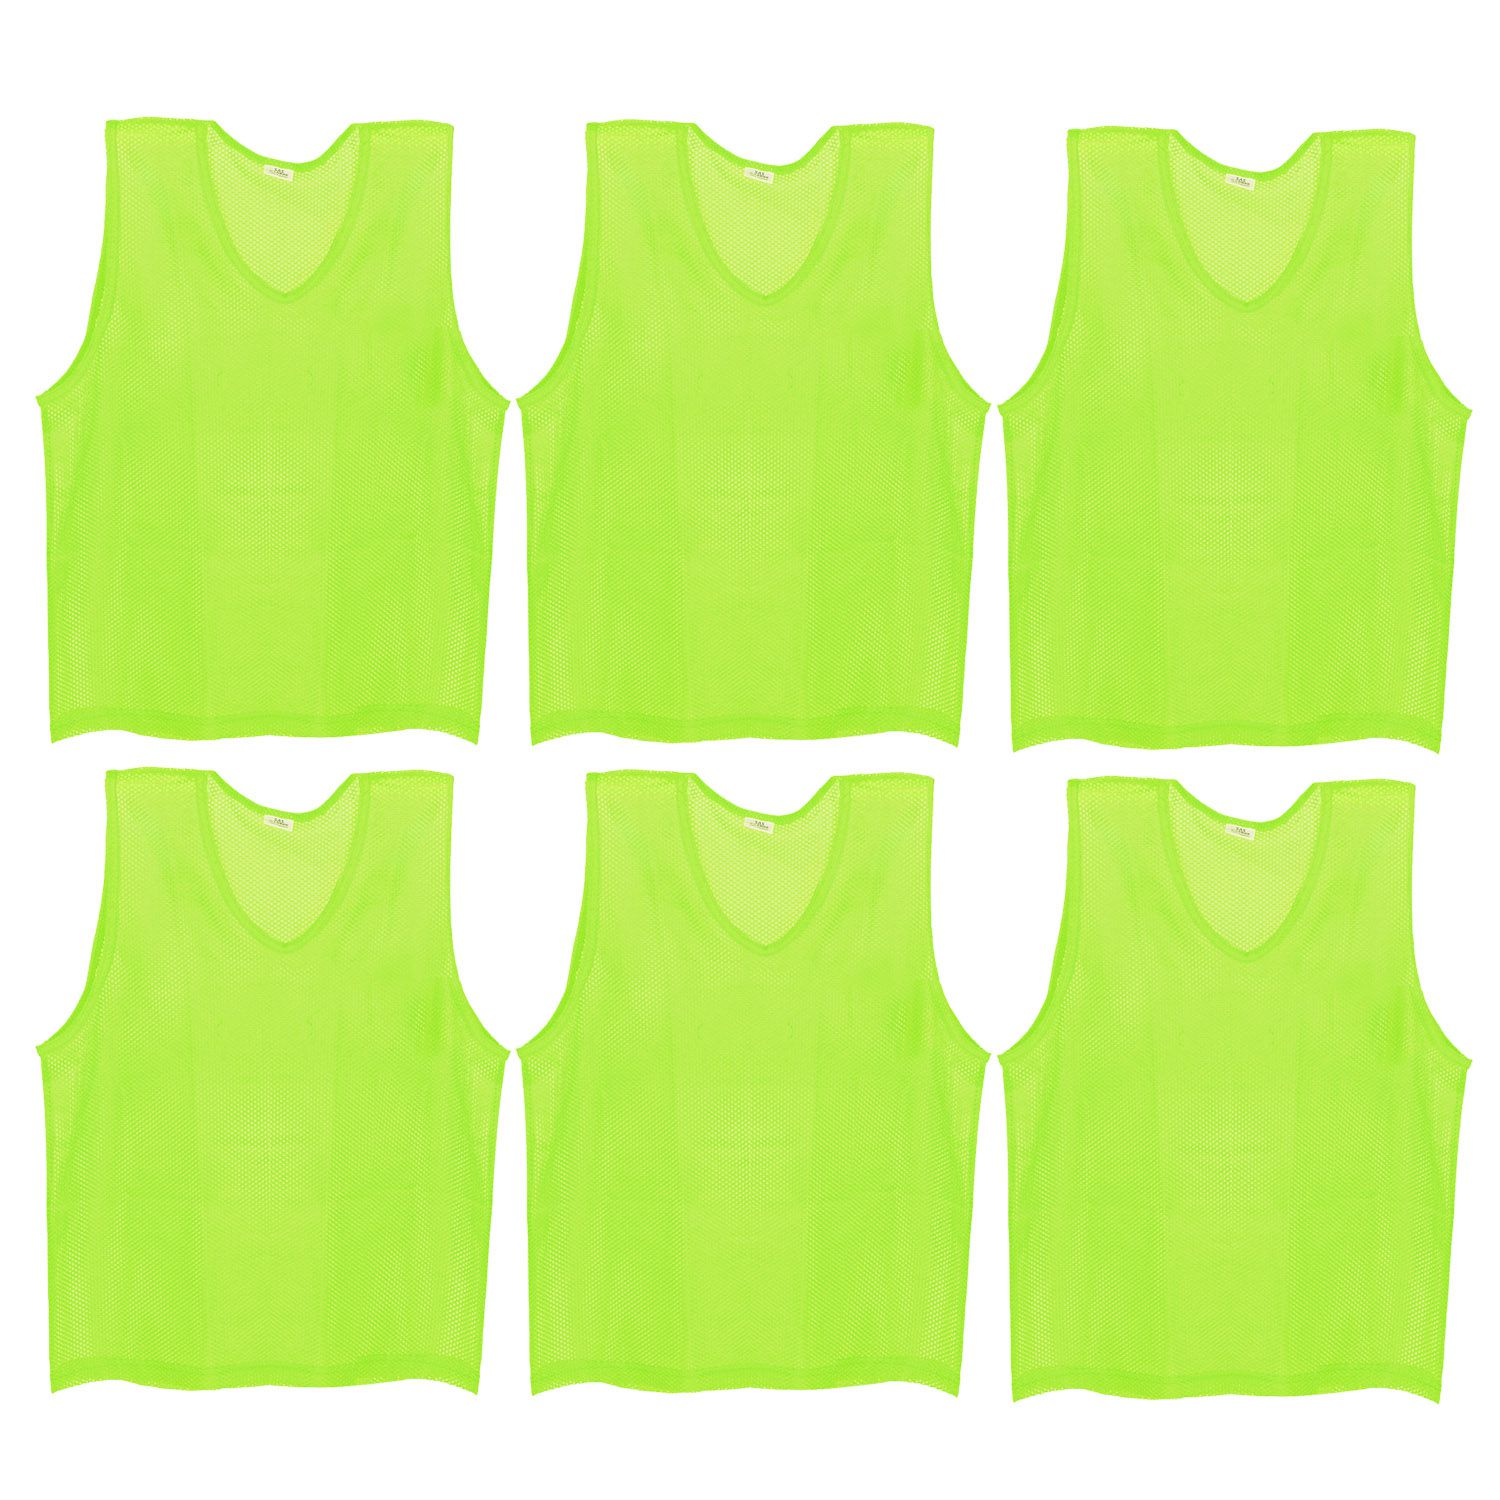 SAS Sports Training Bibs Scrimmage Vests Pennies for Soccer - Large size (62 x 54cm), Fluorescent Green color, Set of 6